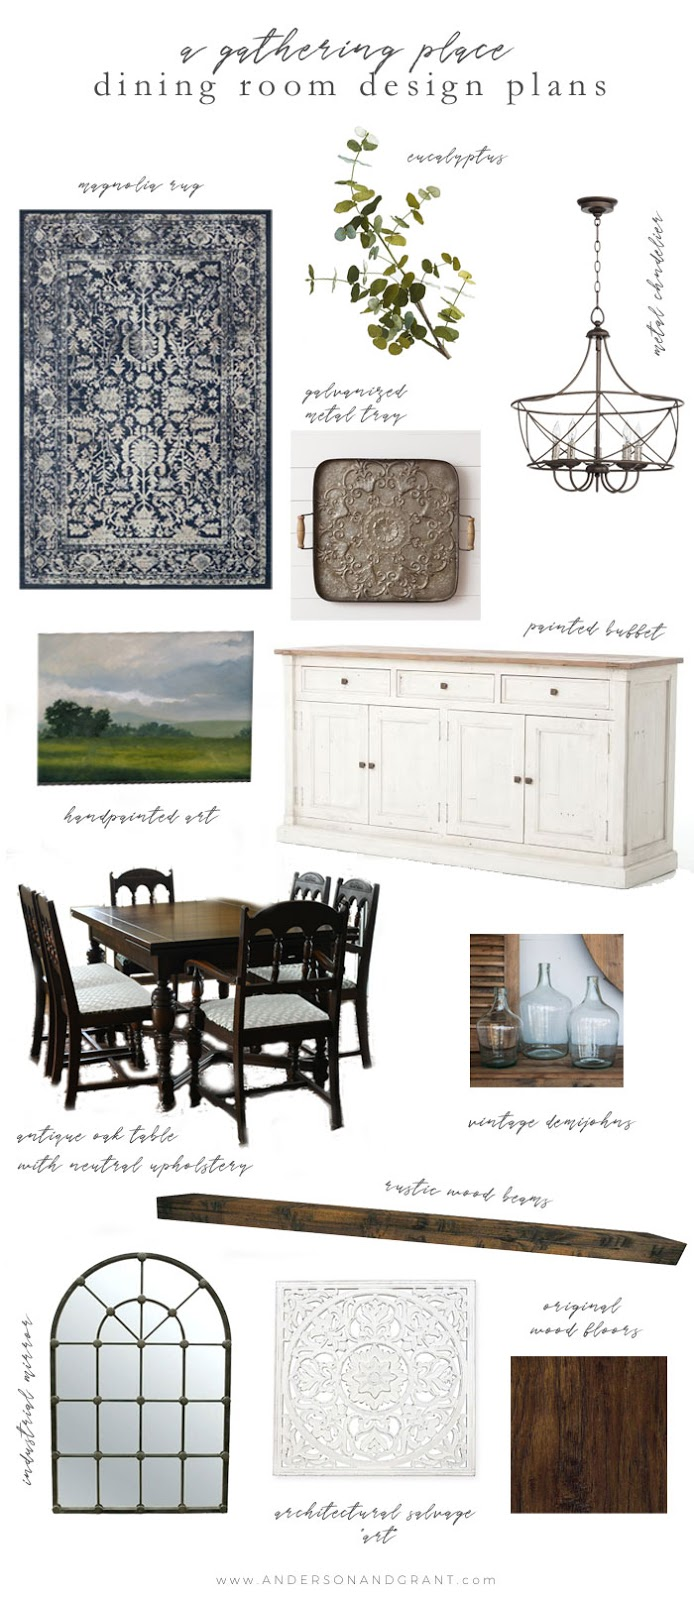 Dining room design plans mood board